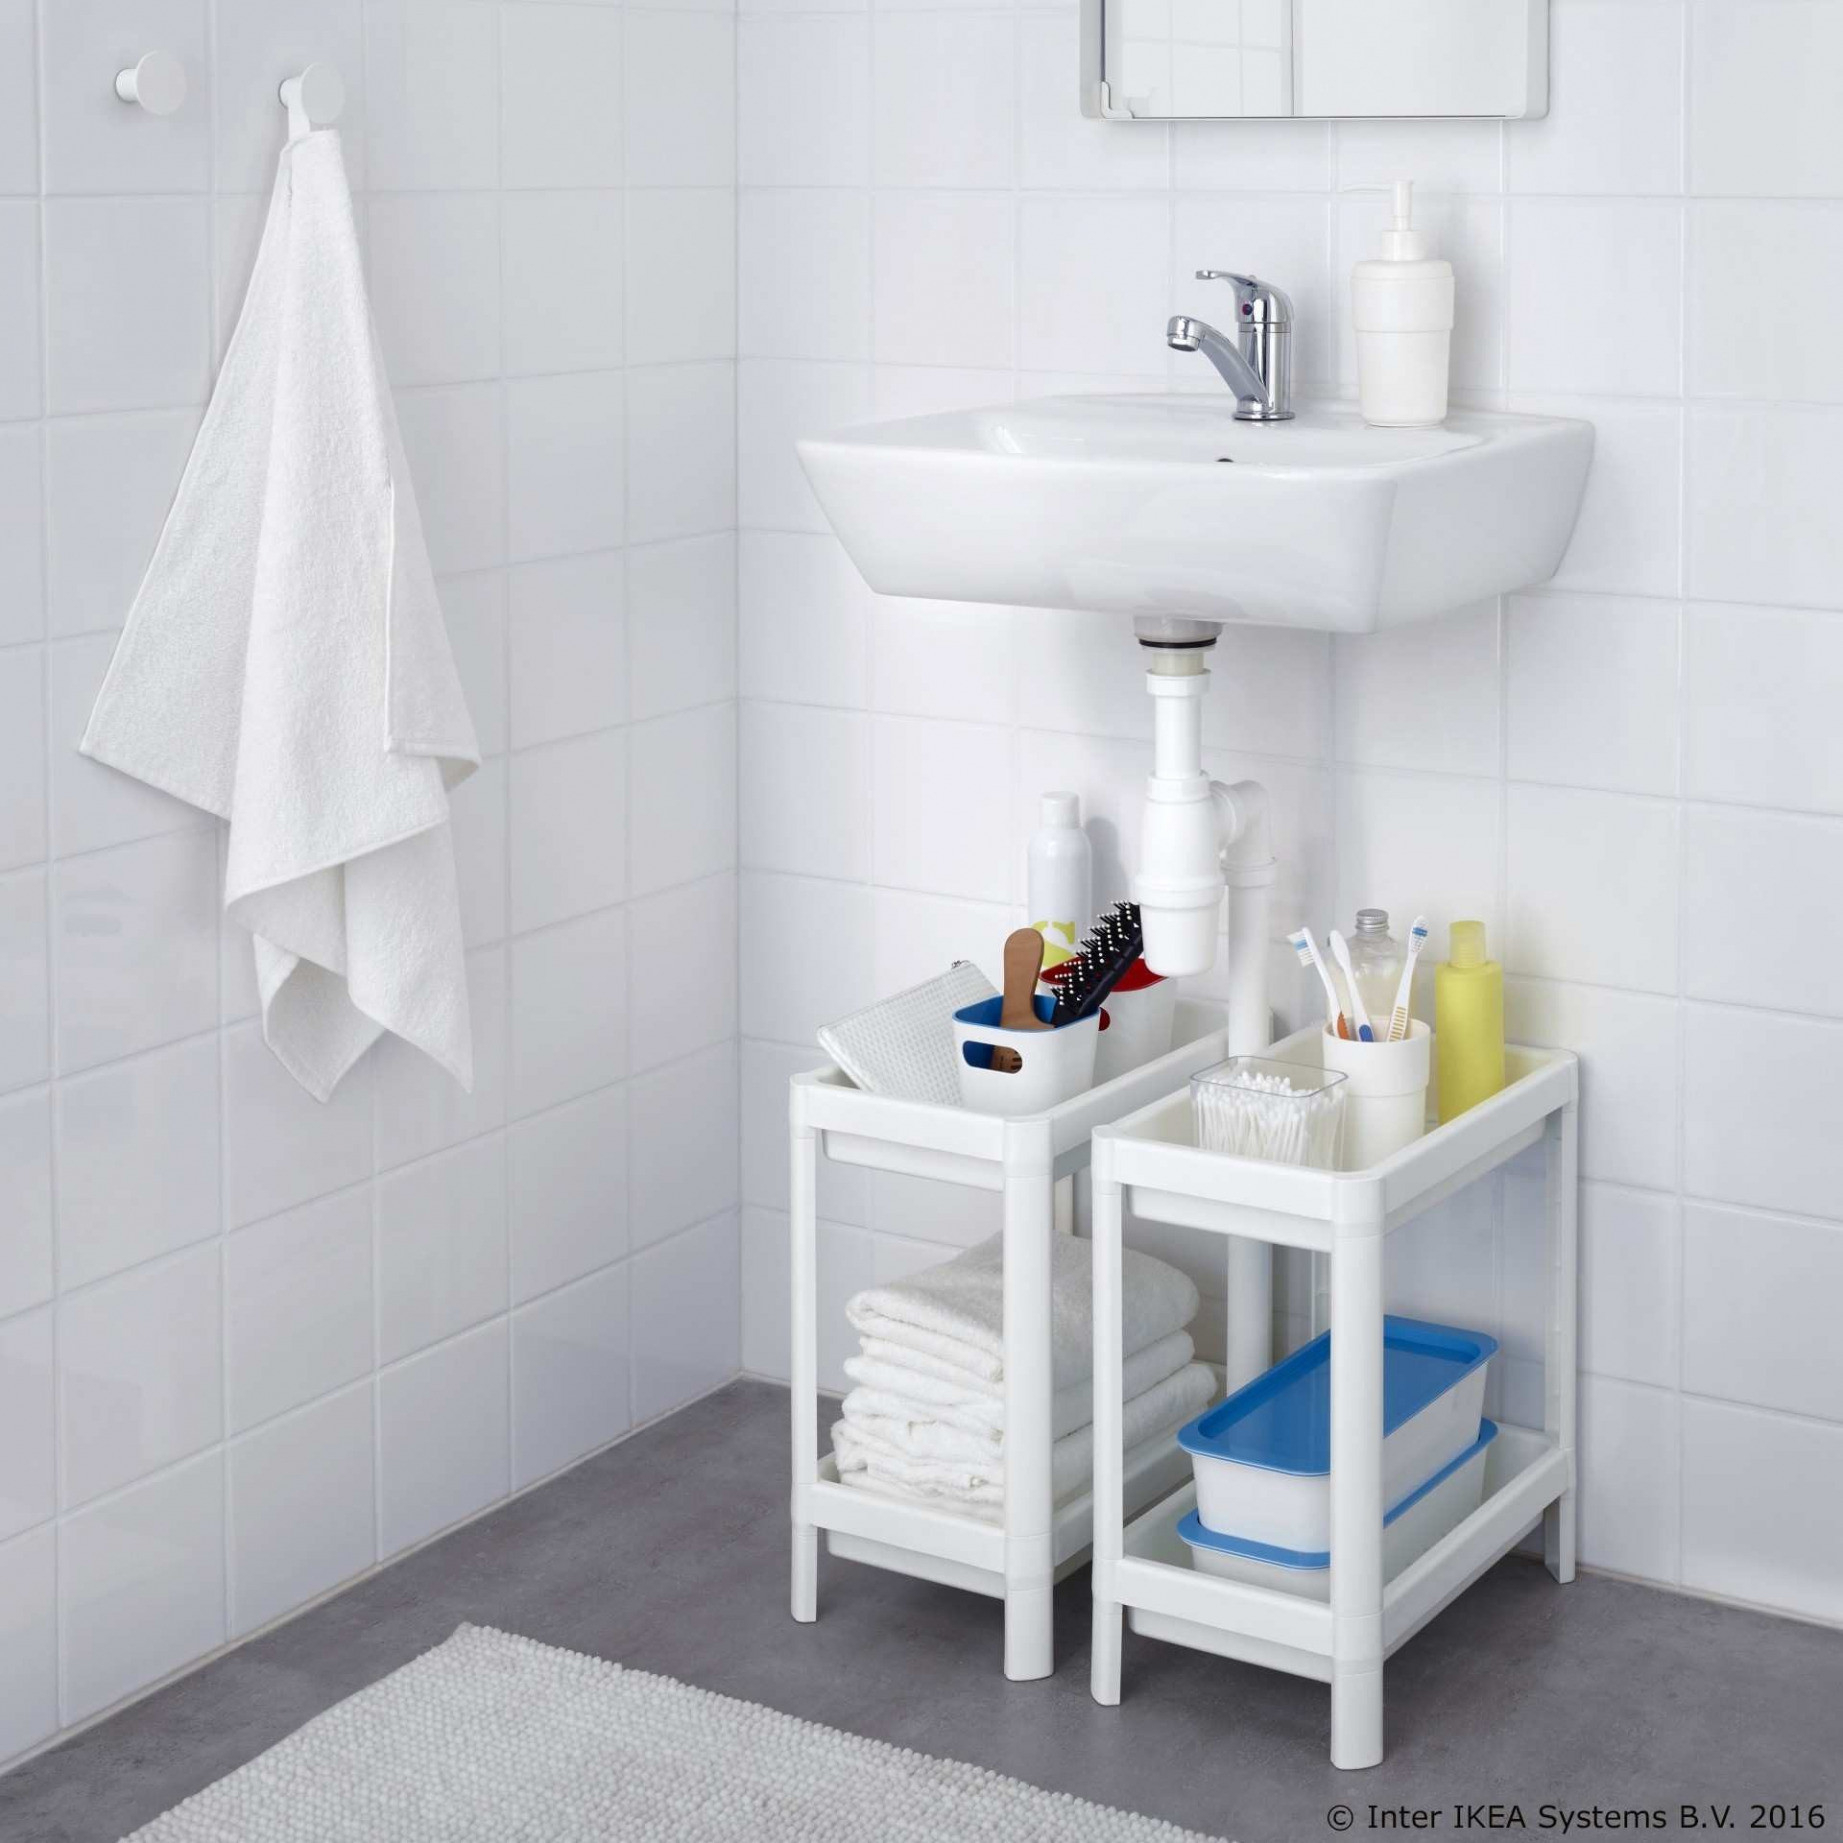 25 Lovely Bathroom Furniture Marks And Spencer Bathroom Design Ideas intended for proportions 1843 X 1843